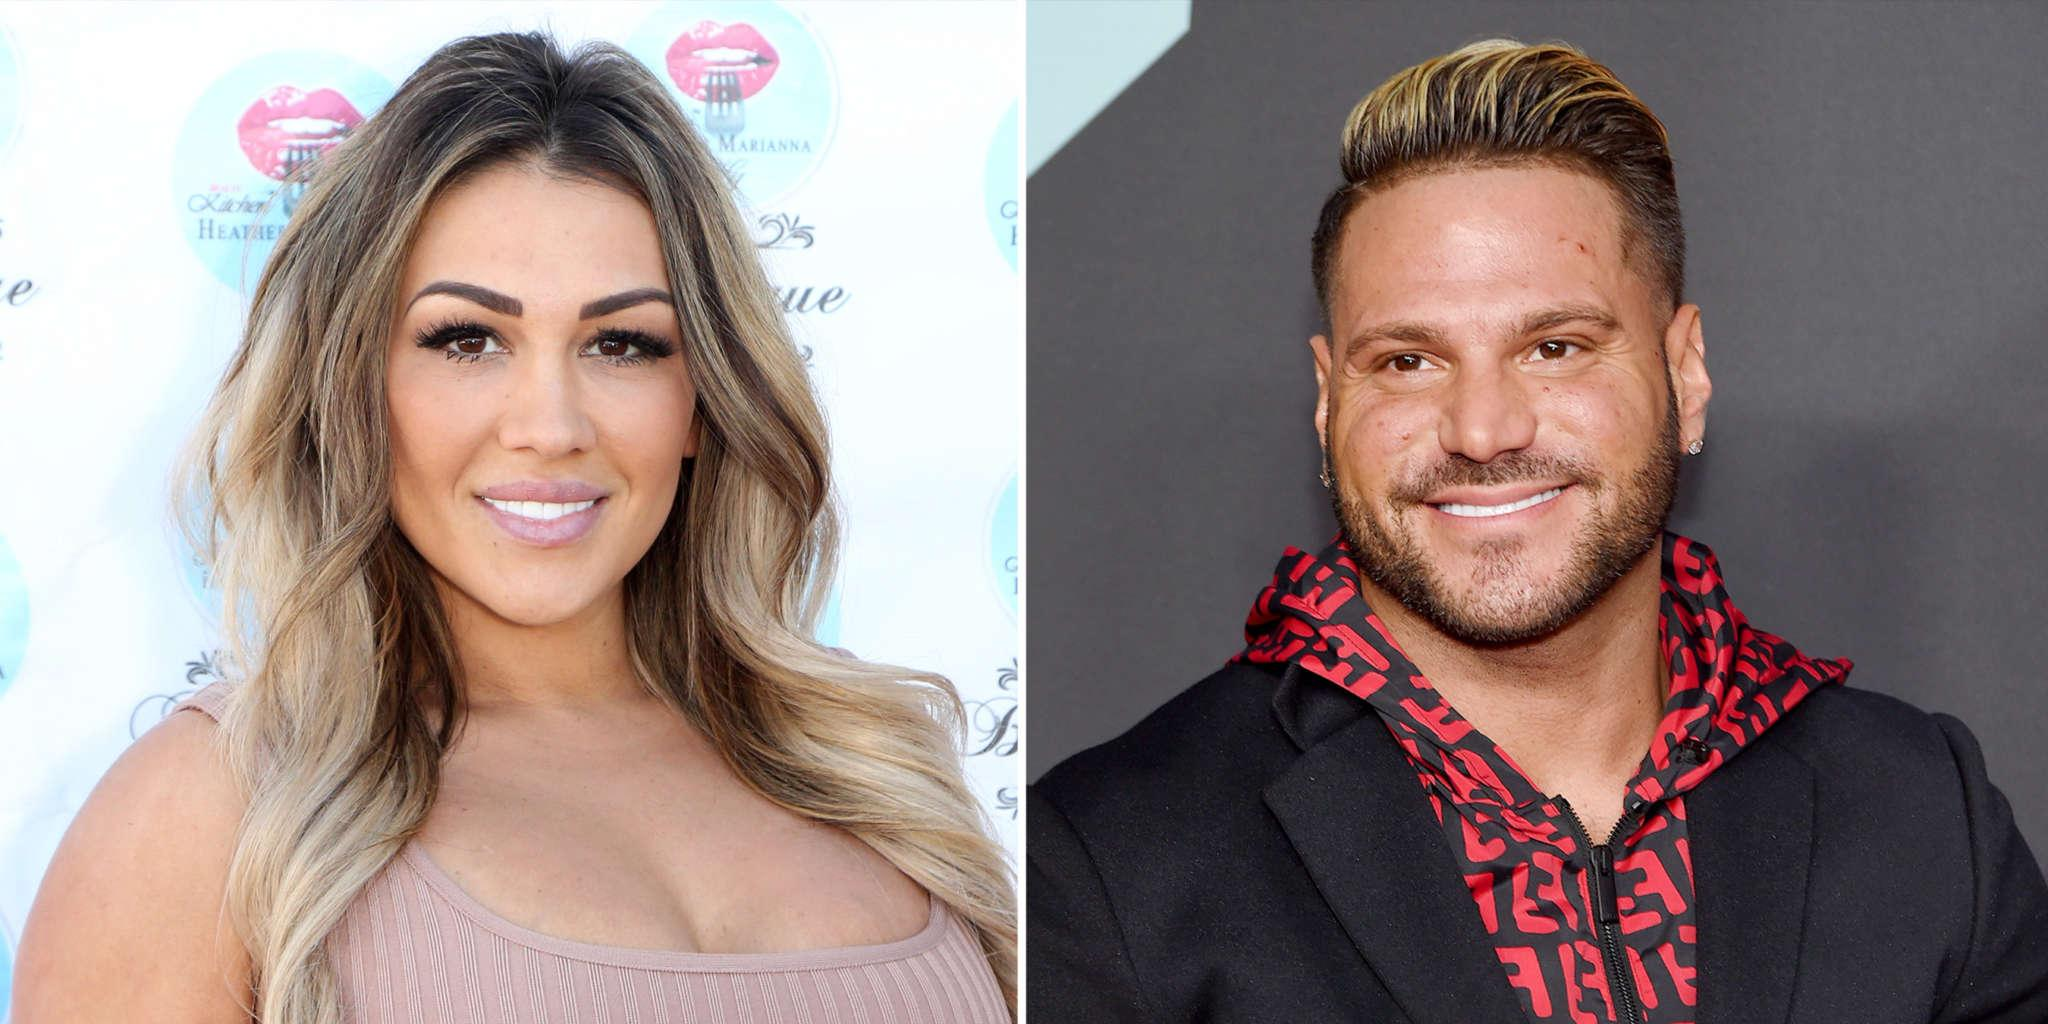 Jen Harley And Ronnie Ortiz-Magro Could Lose Custody Of Their Baby Girl If They Get Back Together, Attorney Explains